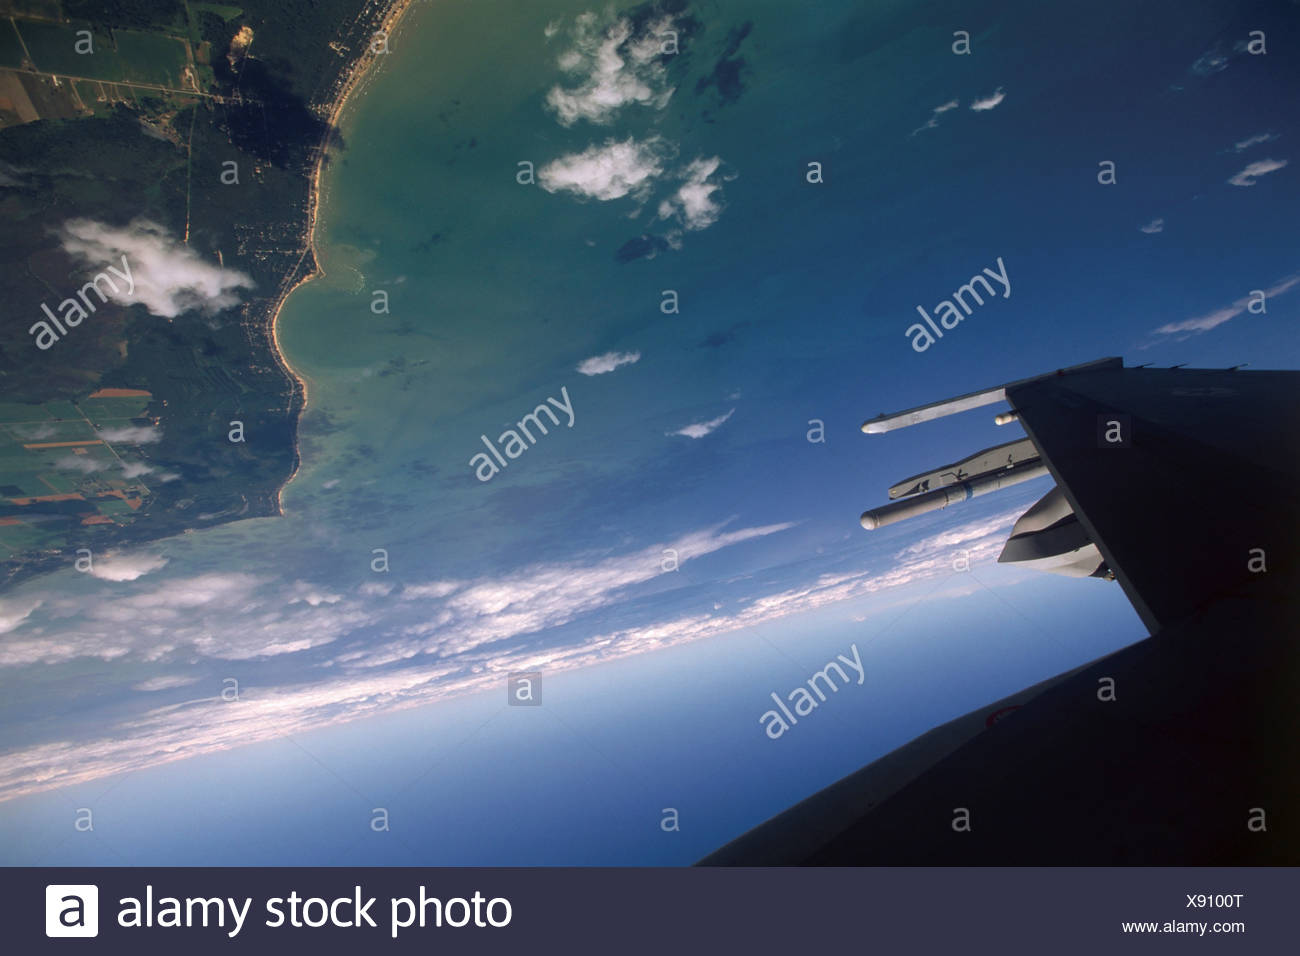 Upside Down, Approaching Mach 1, and Admiring the Lake Michigan Coastline - Stock Image